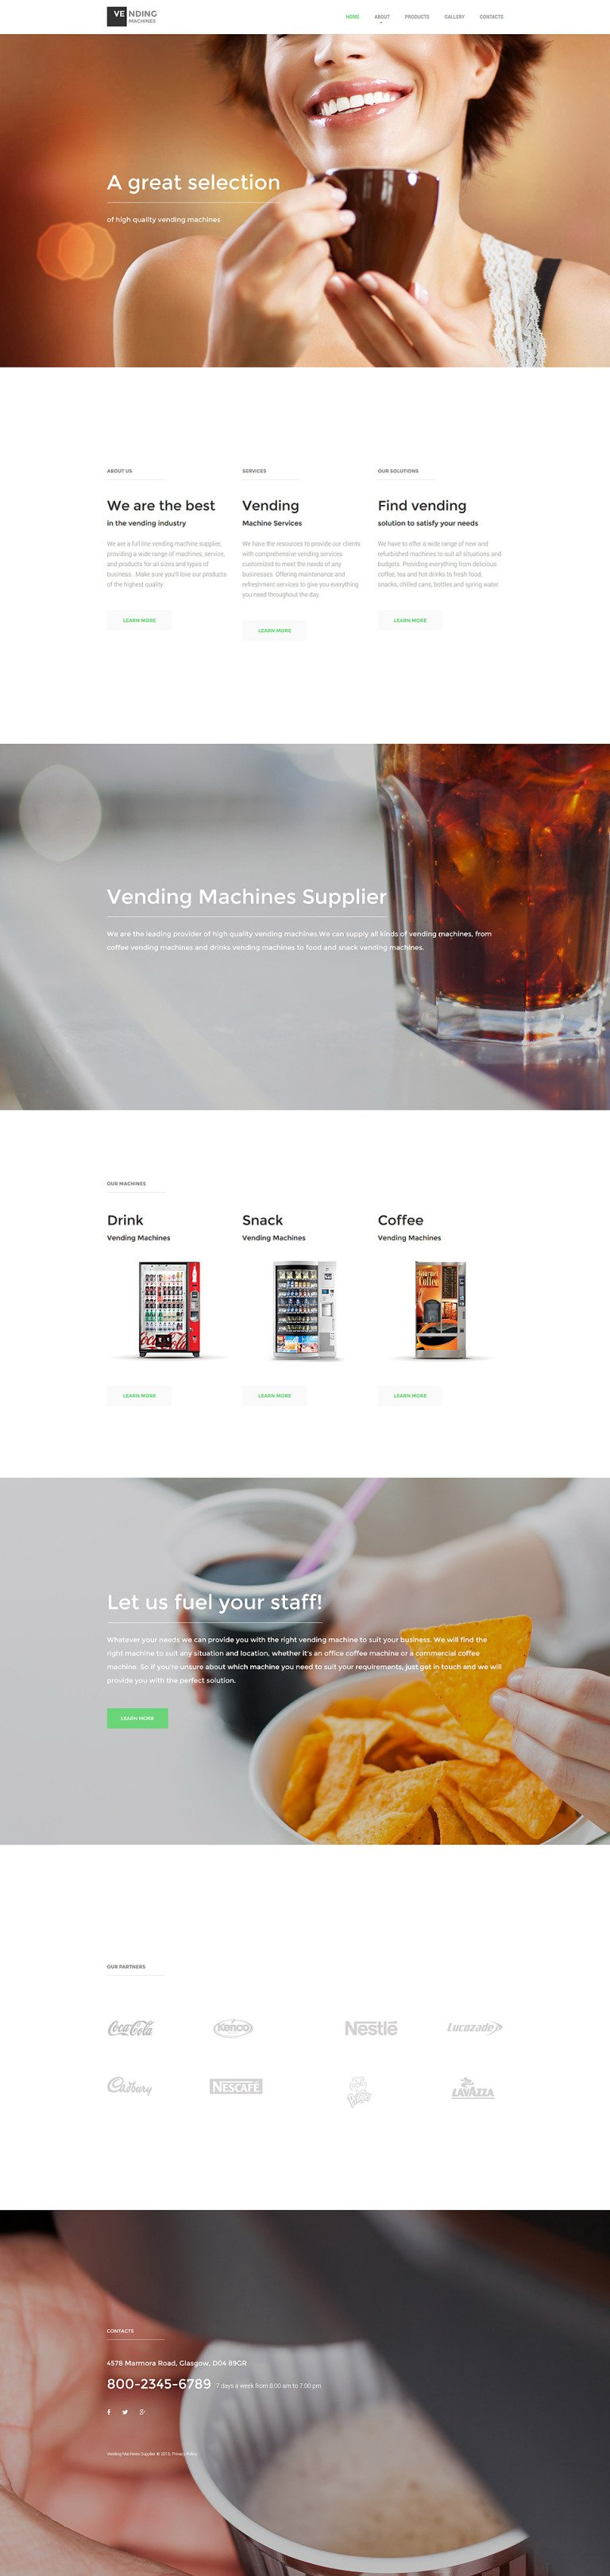 Vending Machines Responsive Website Template New Screenshots BIG